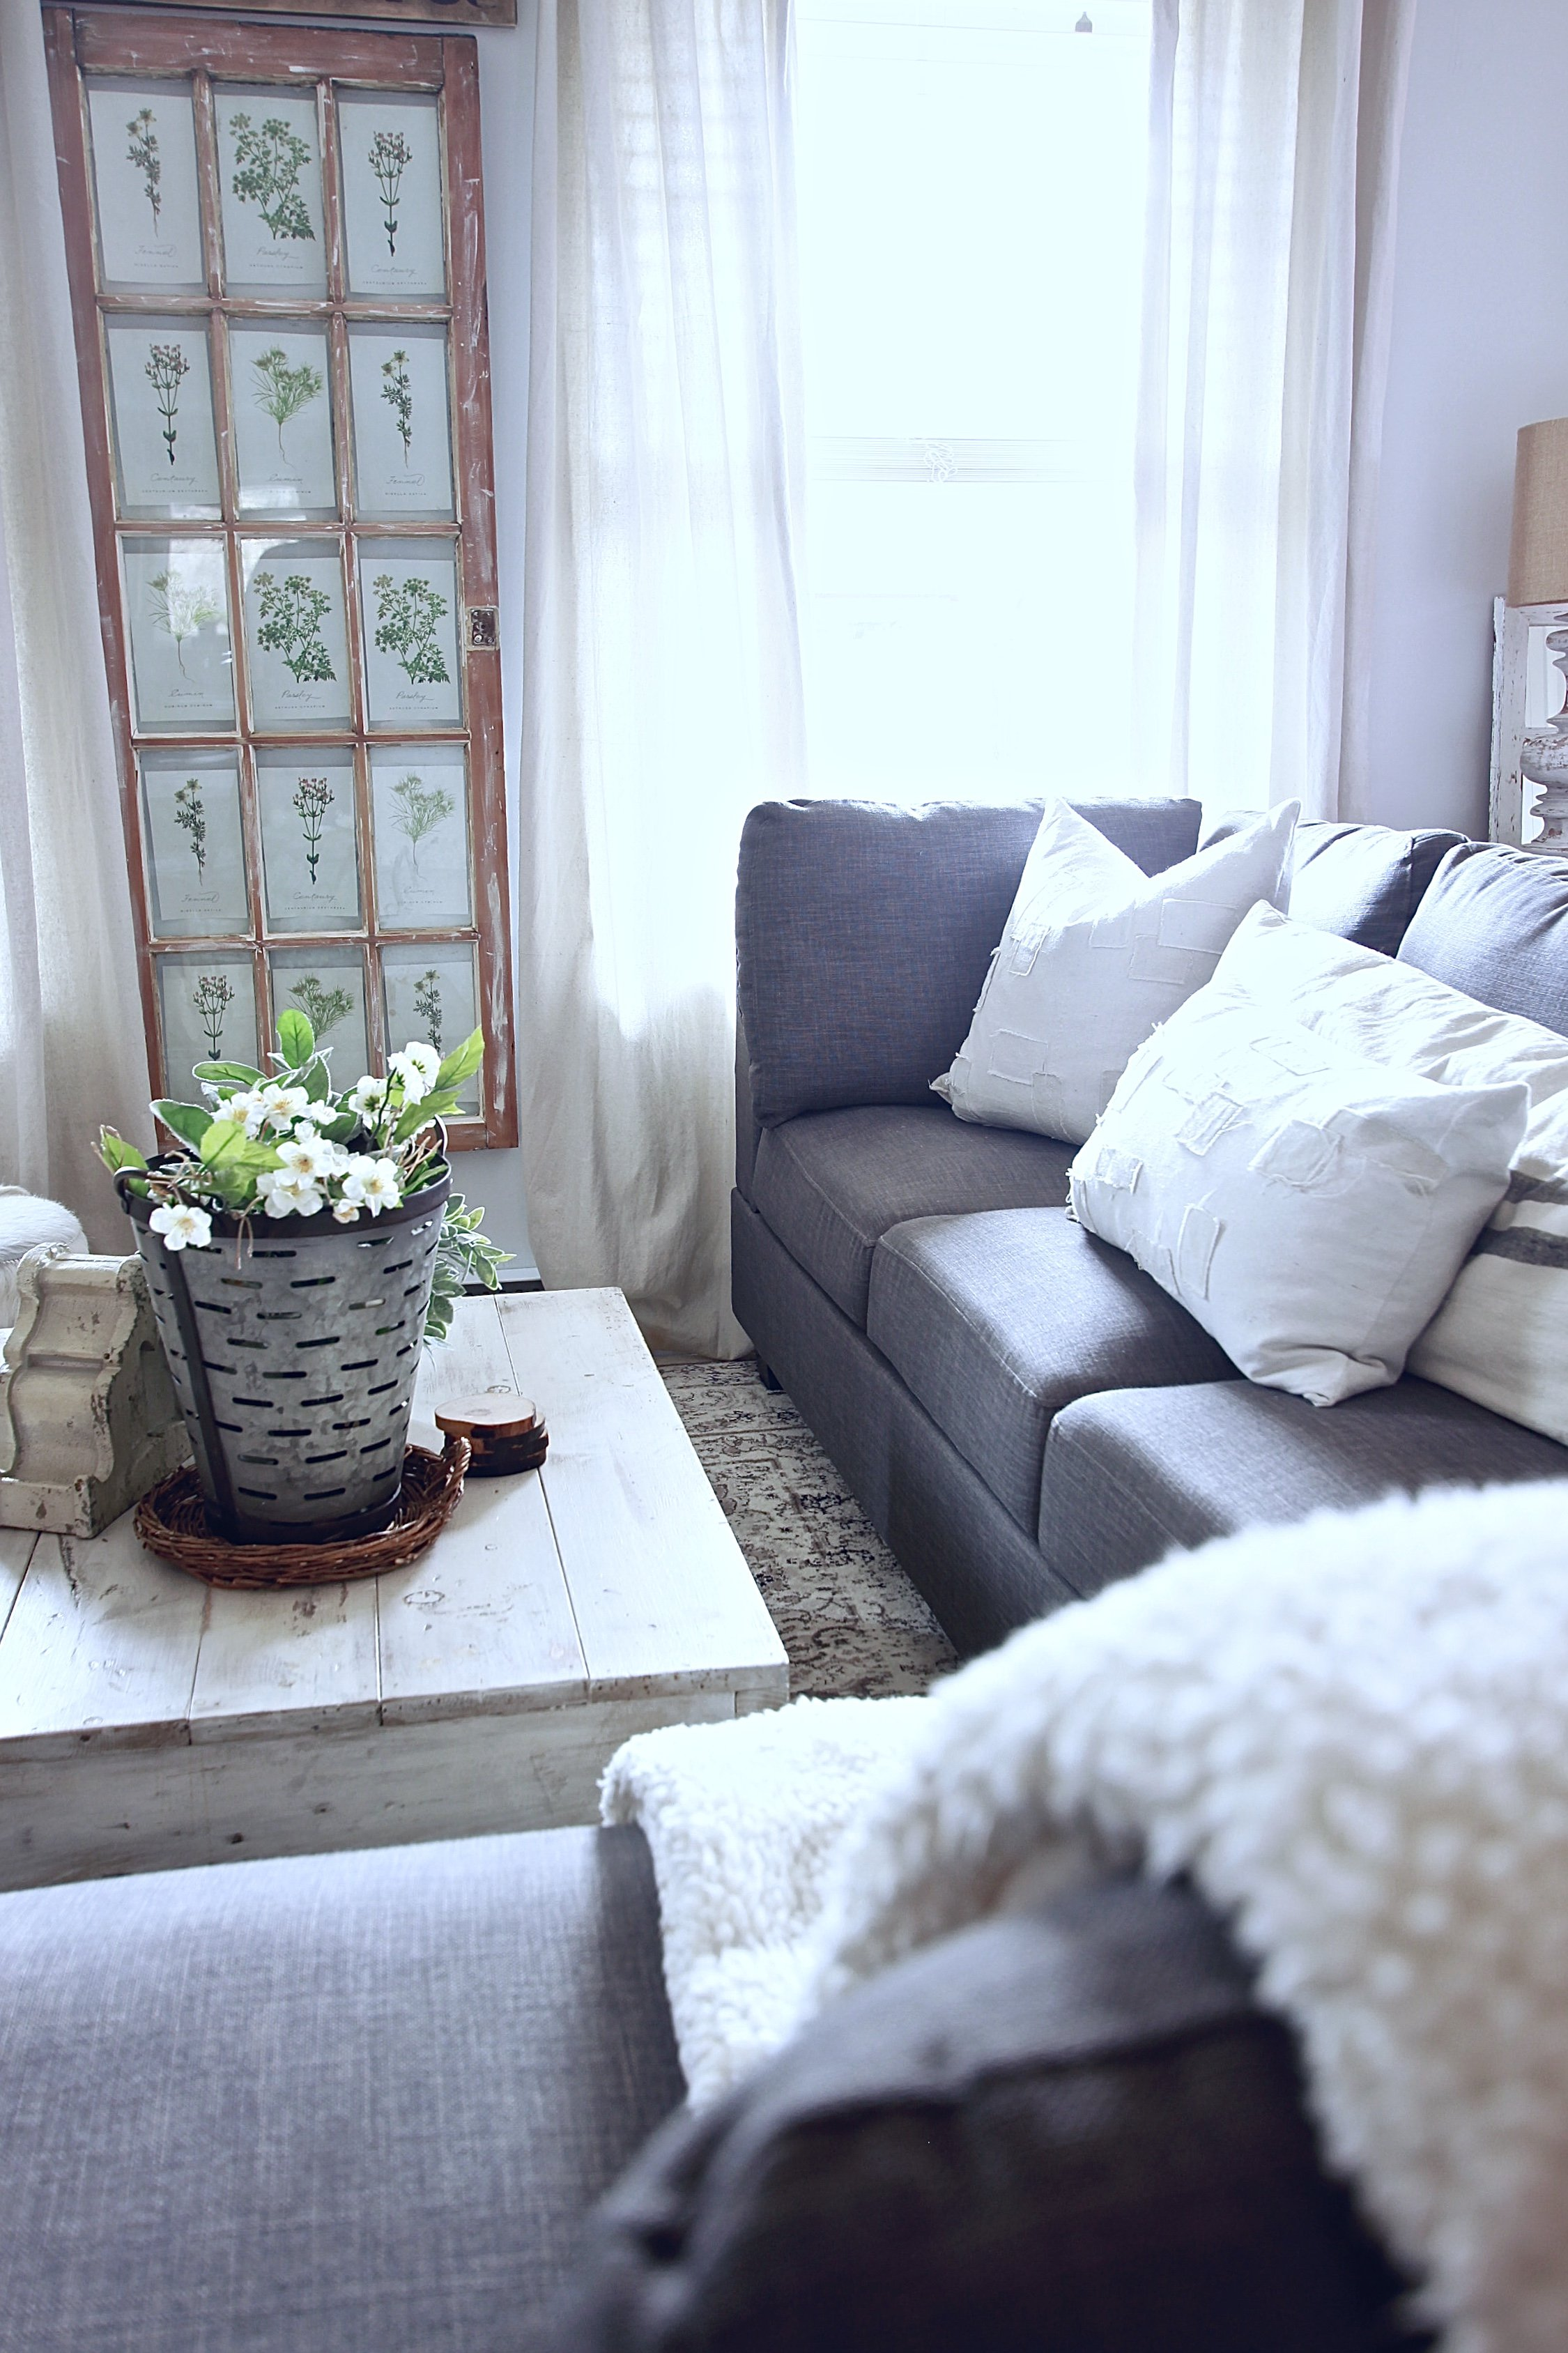 White Woodsy Living Room. Bringing Antique Pieces, Vintage Made Looking Furniture and Decor to create a cozy haven www.whitepicketfarmhouse.com